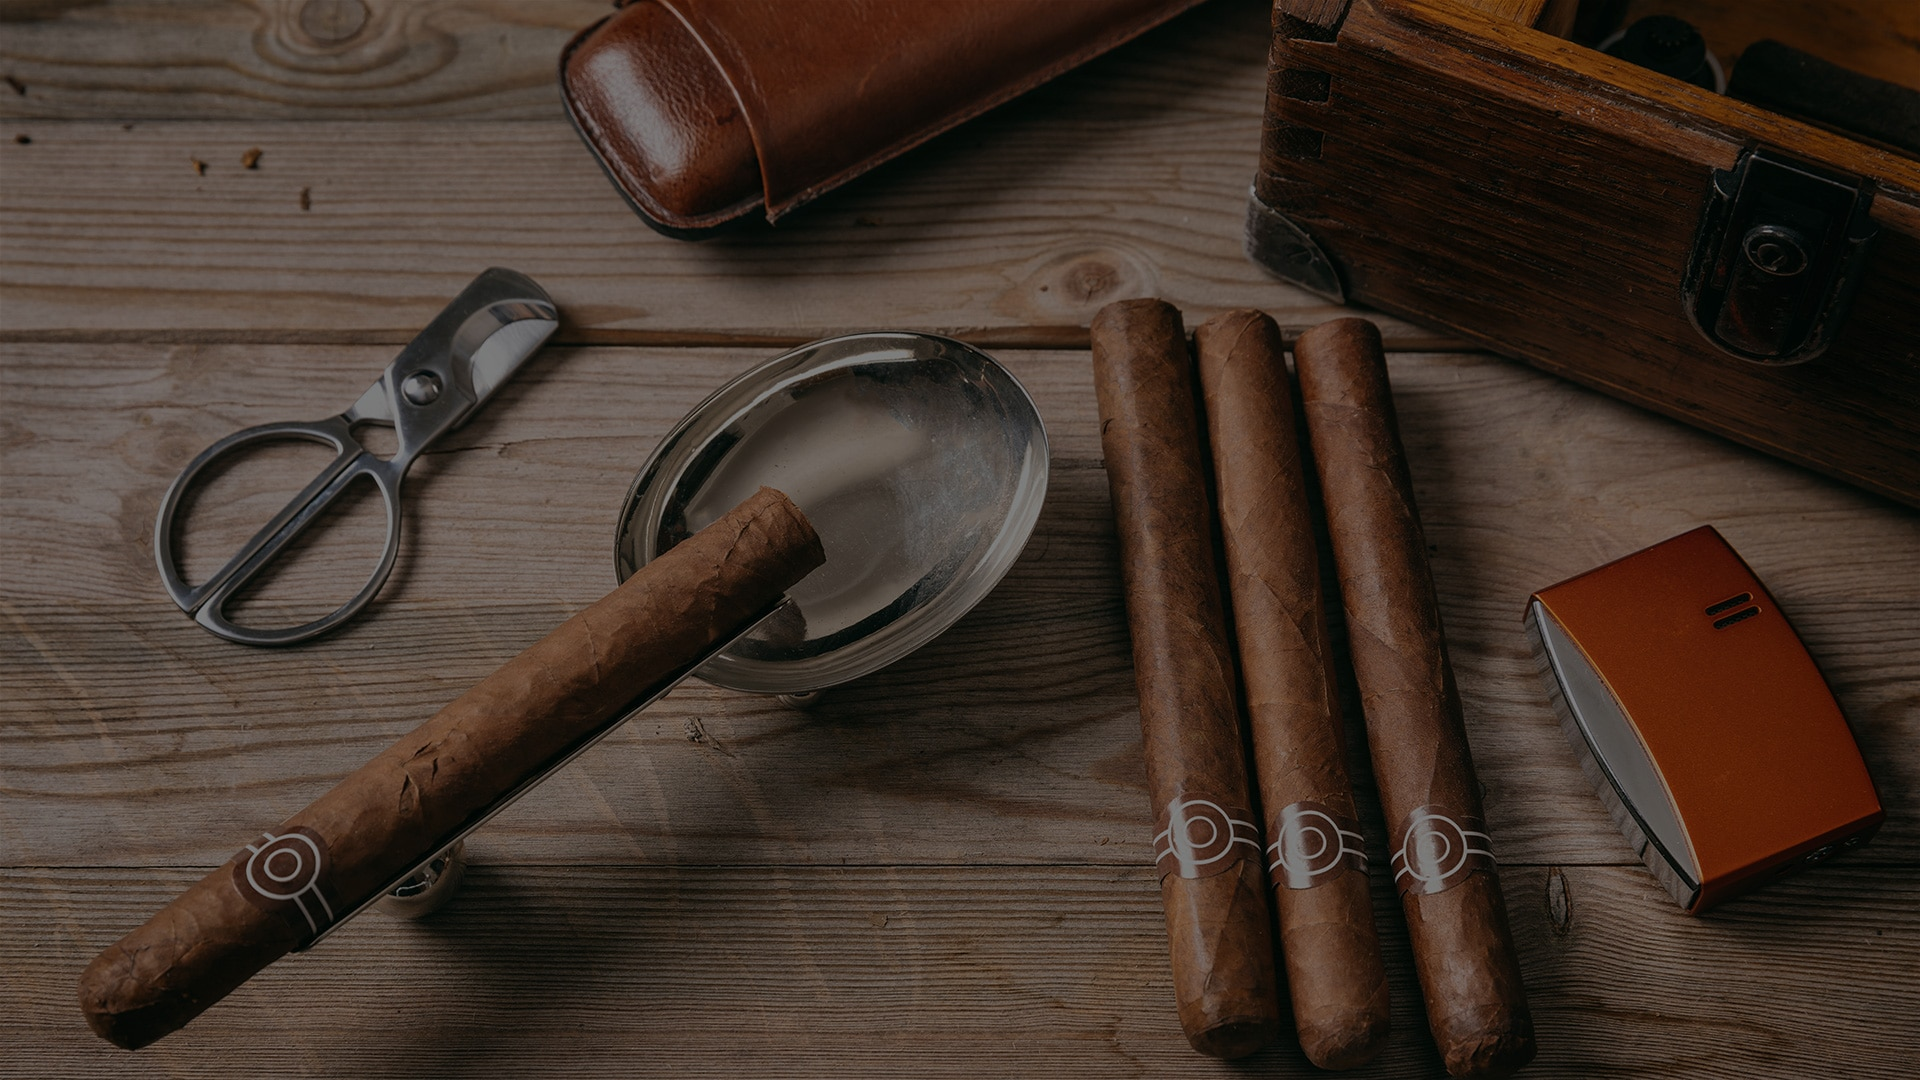 Lynn Cigars Background